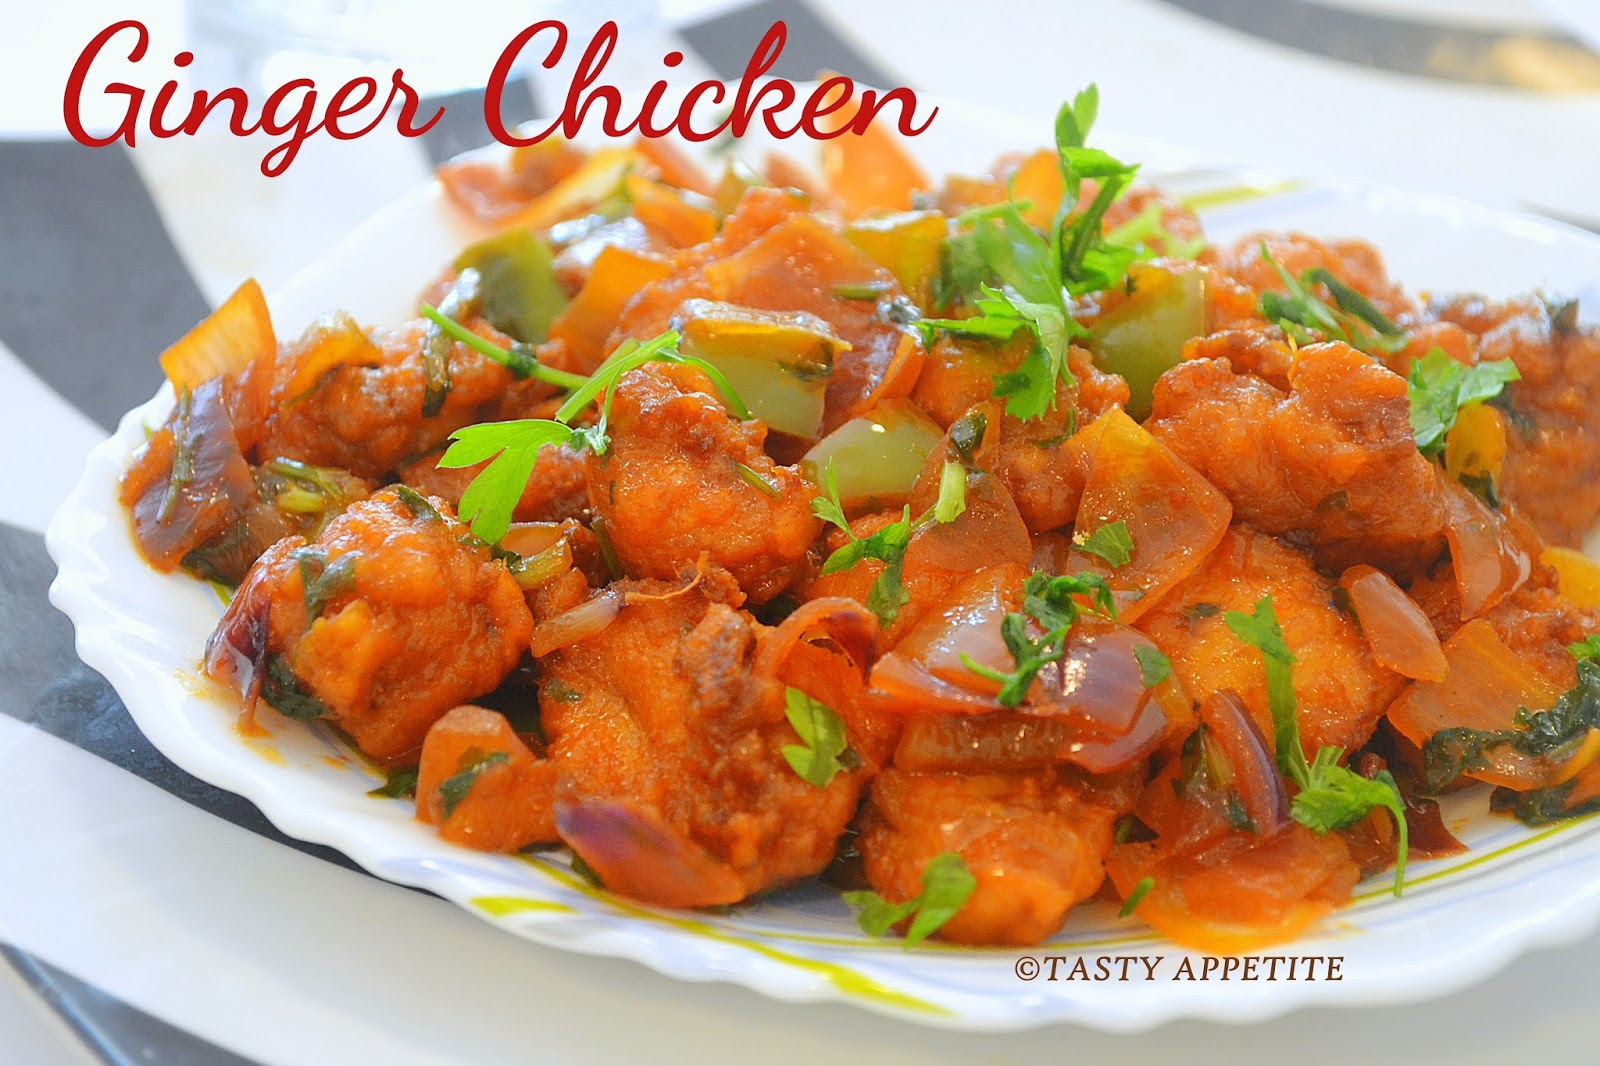 Ginger chicken recipe how to make ginger chicken indo chinese ginger chicken recipe how to make ginger chicken indo chinese chicken recipes forumfinder Images